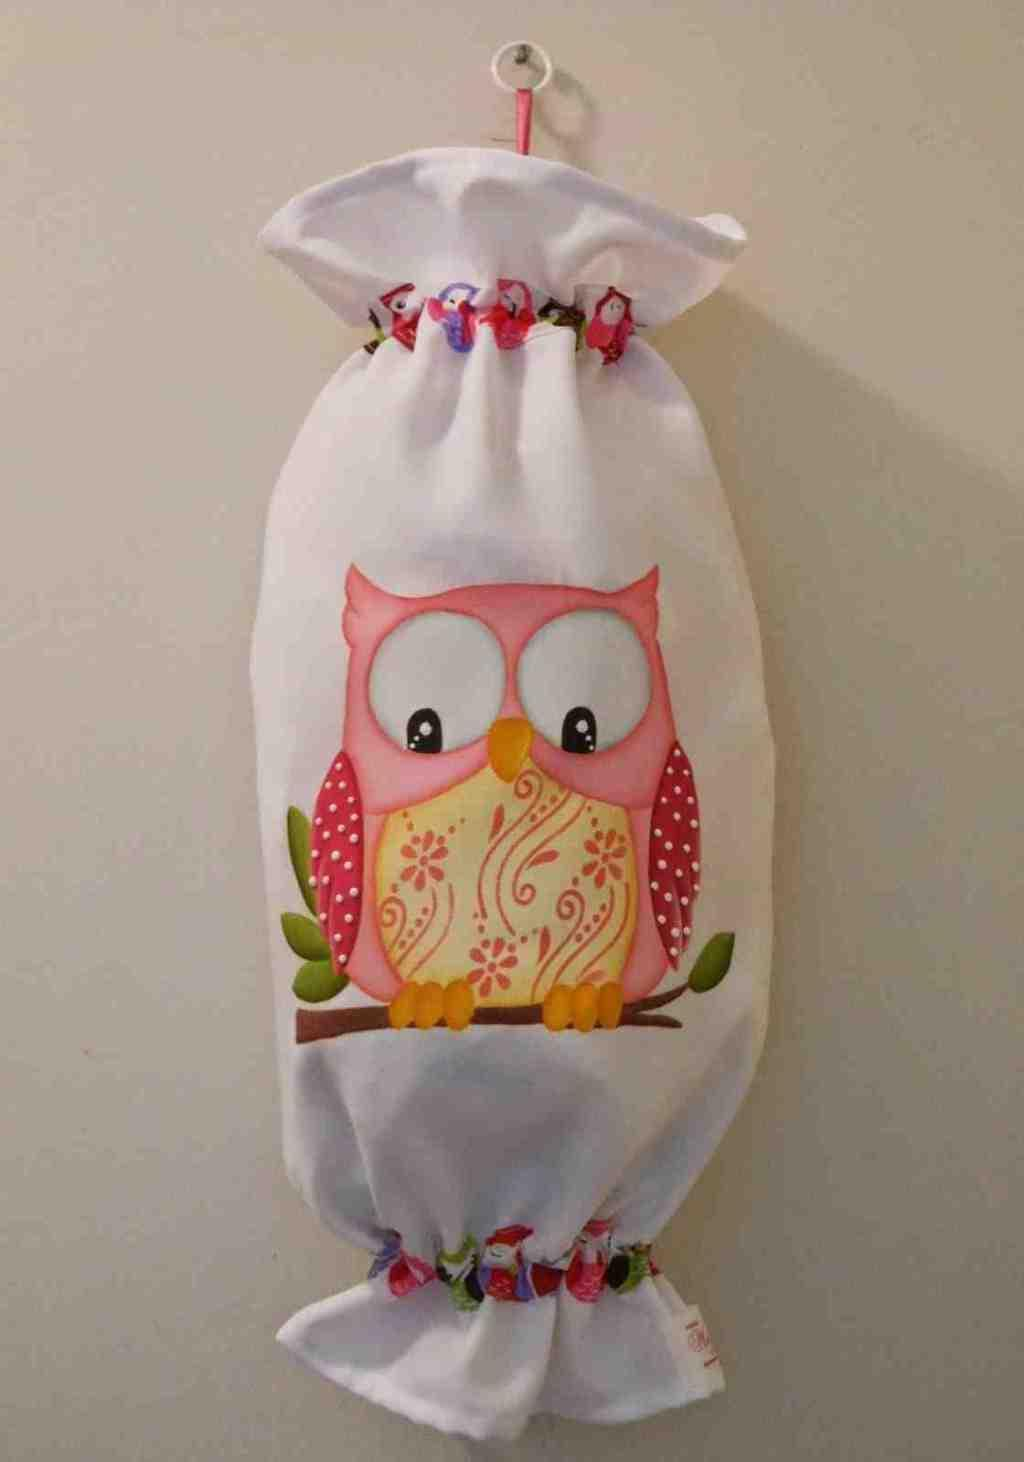 Pull Owl Bag: 60 ideas with photos and video step by step 24